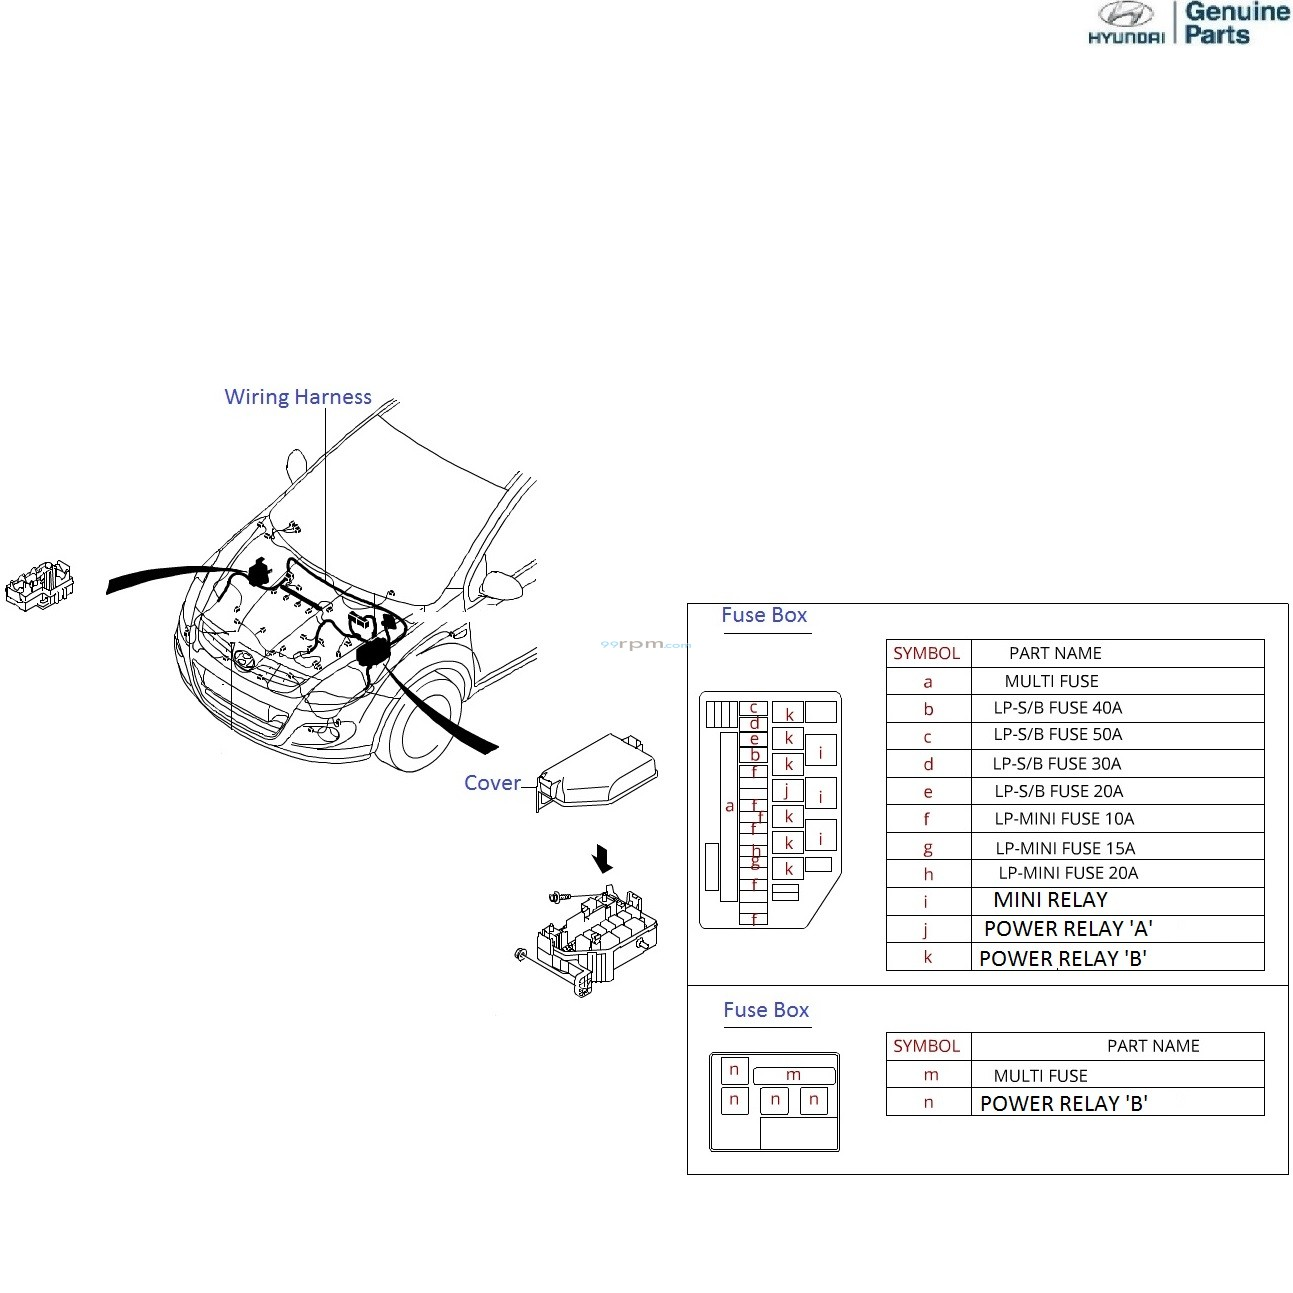 2000 Hyundai Elantra Wiring Diagram I20 Browse Data Of Schema Img Stereo